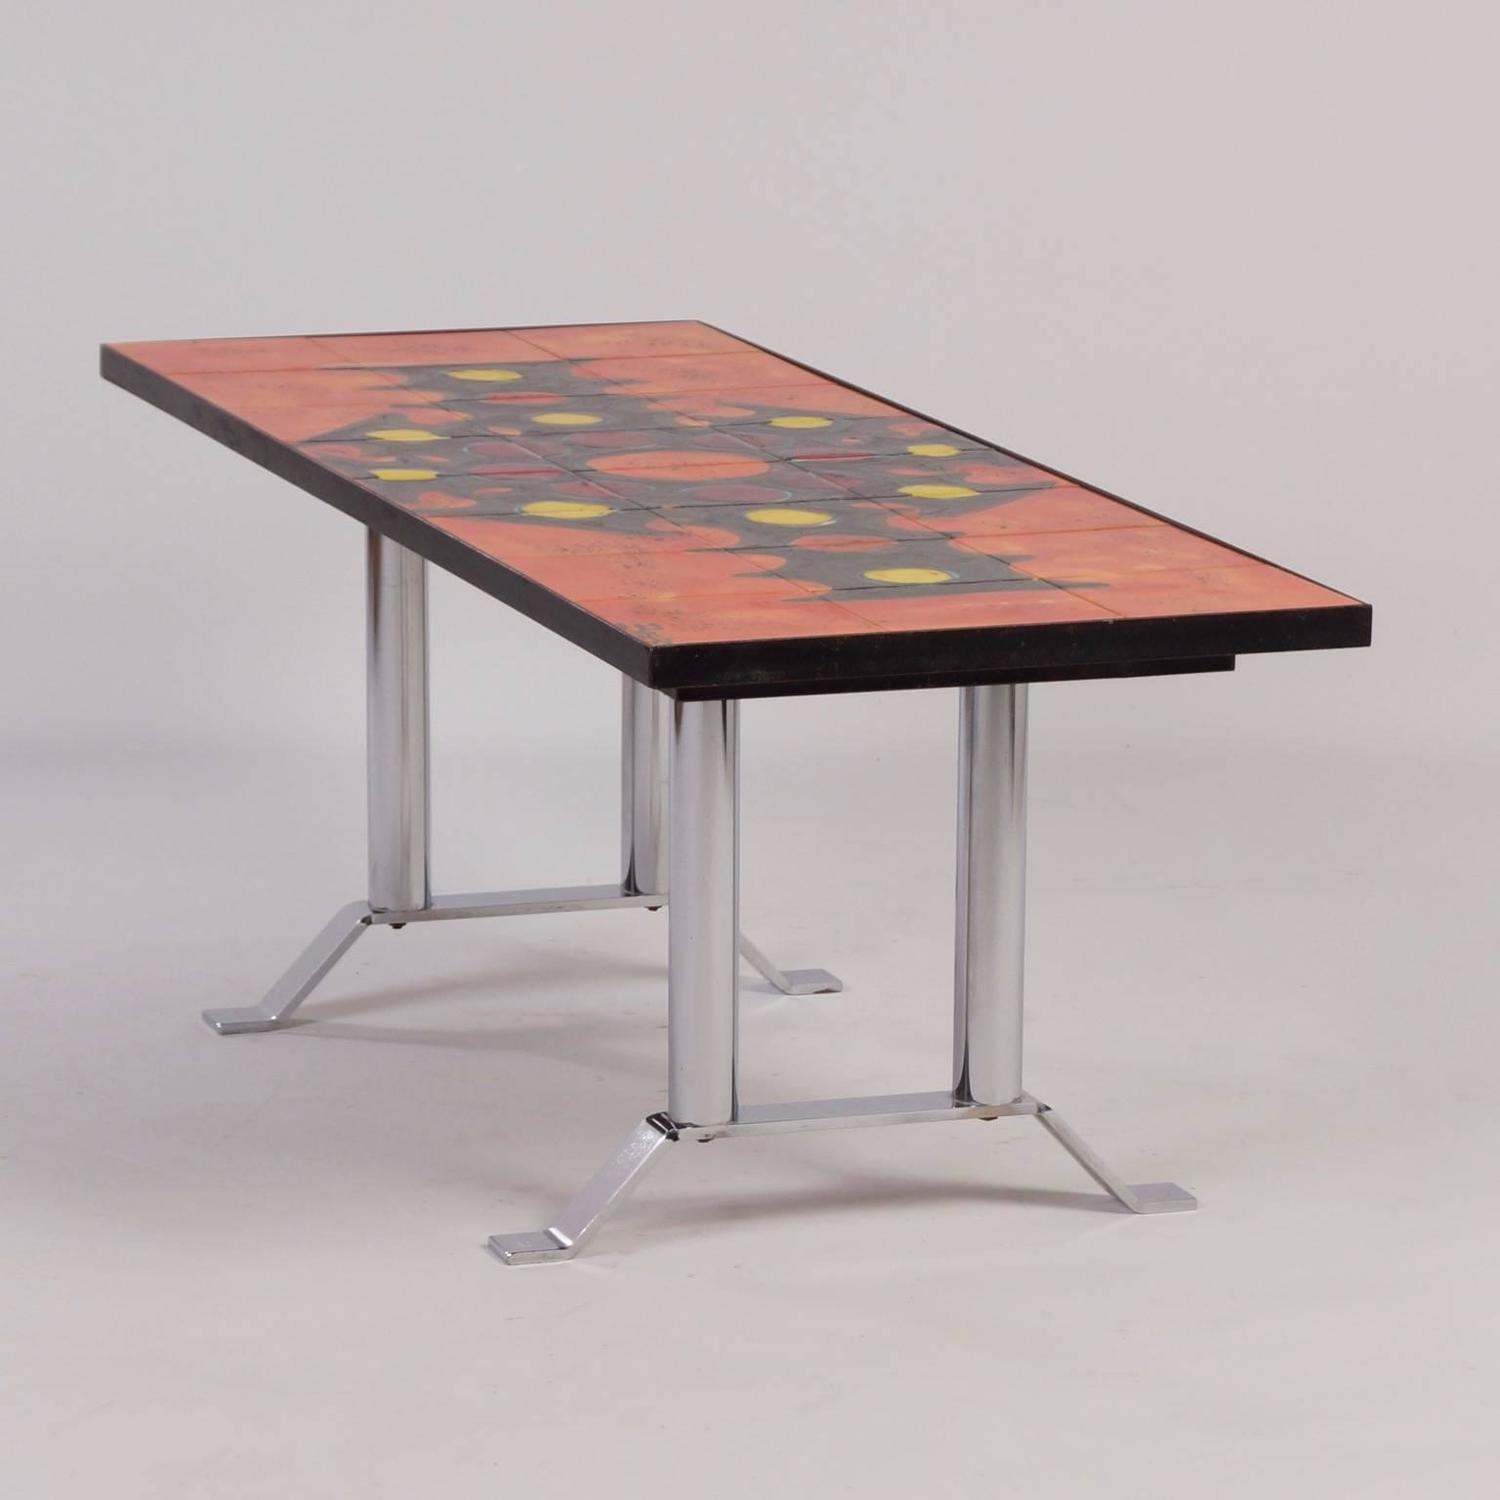 Hand Painted Tile Coffee Table By Belarti 1960s Orange